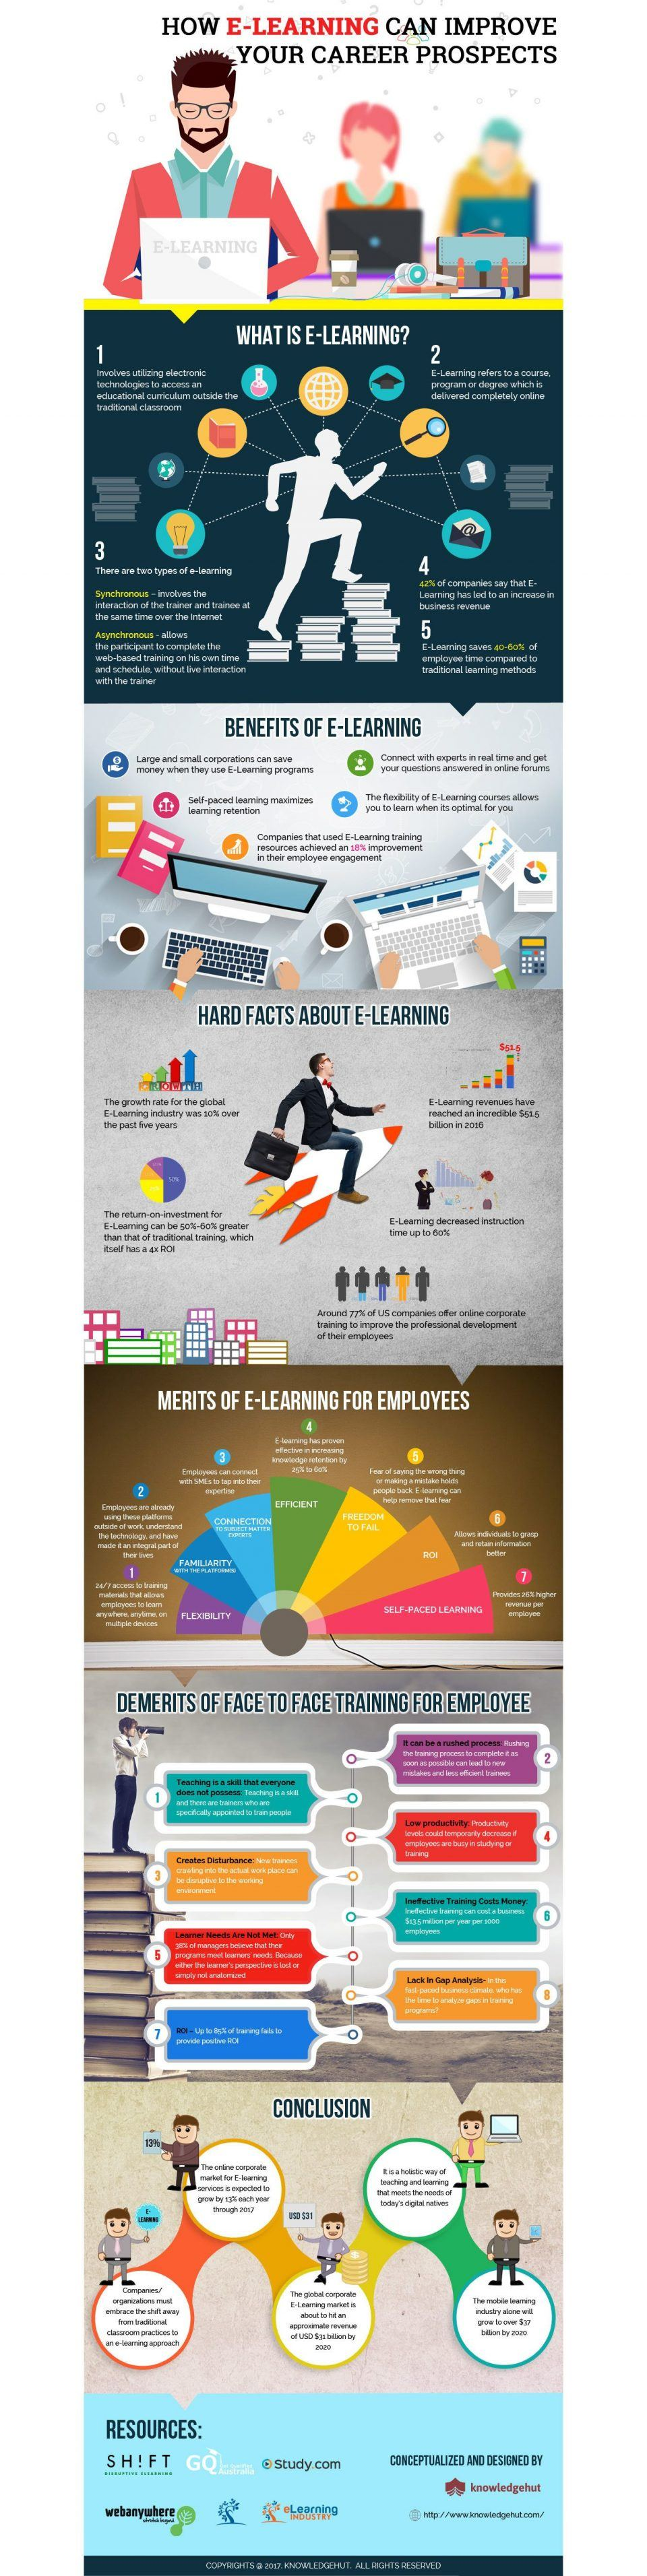 How eLearning Can Help Improve Your Career Prospects Infographic